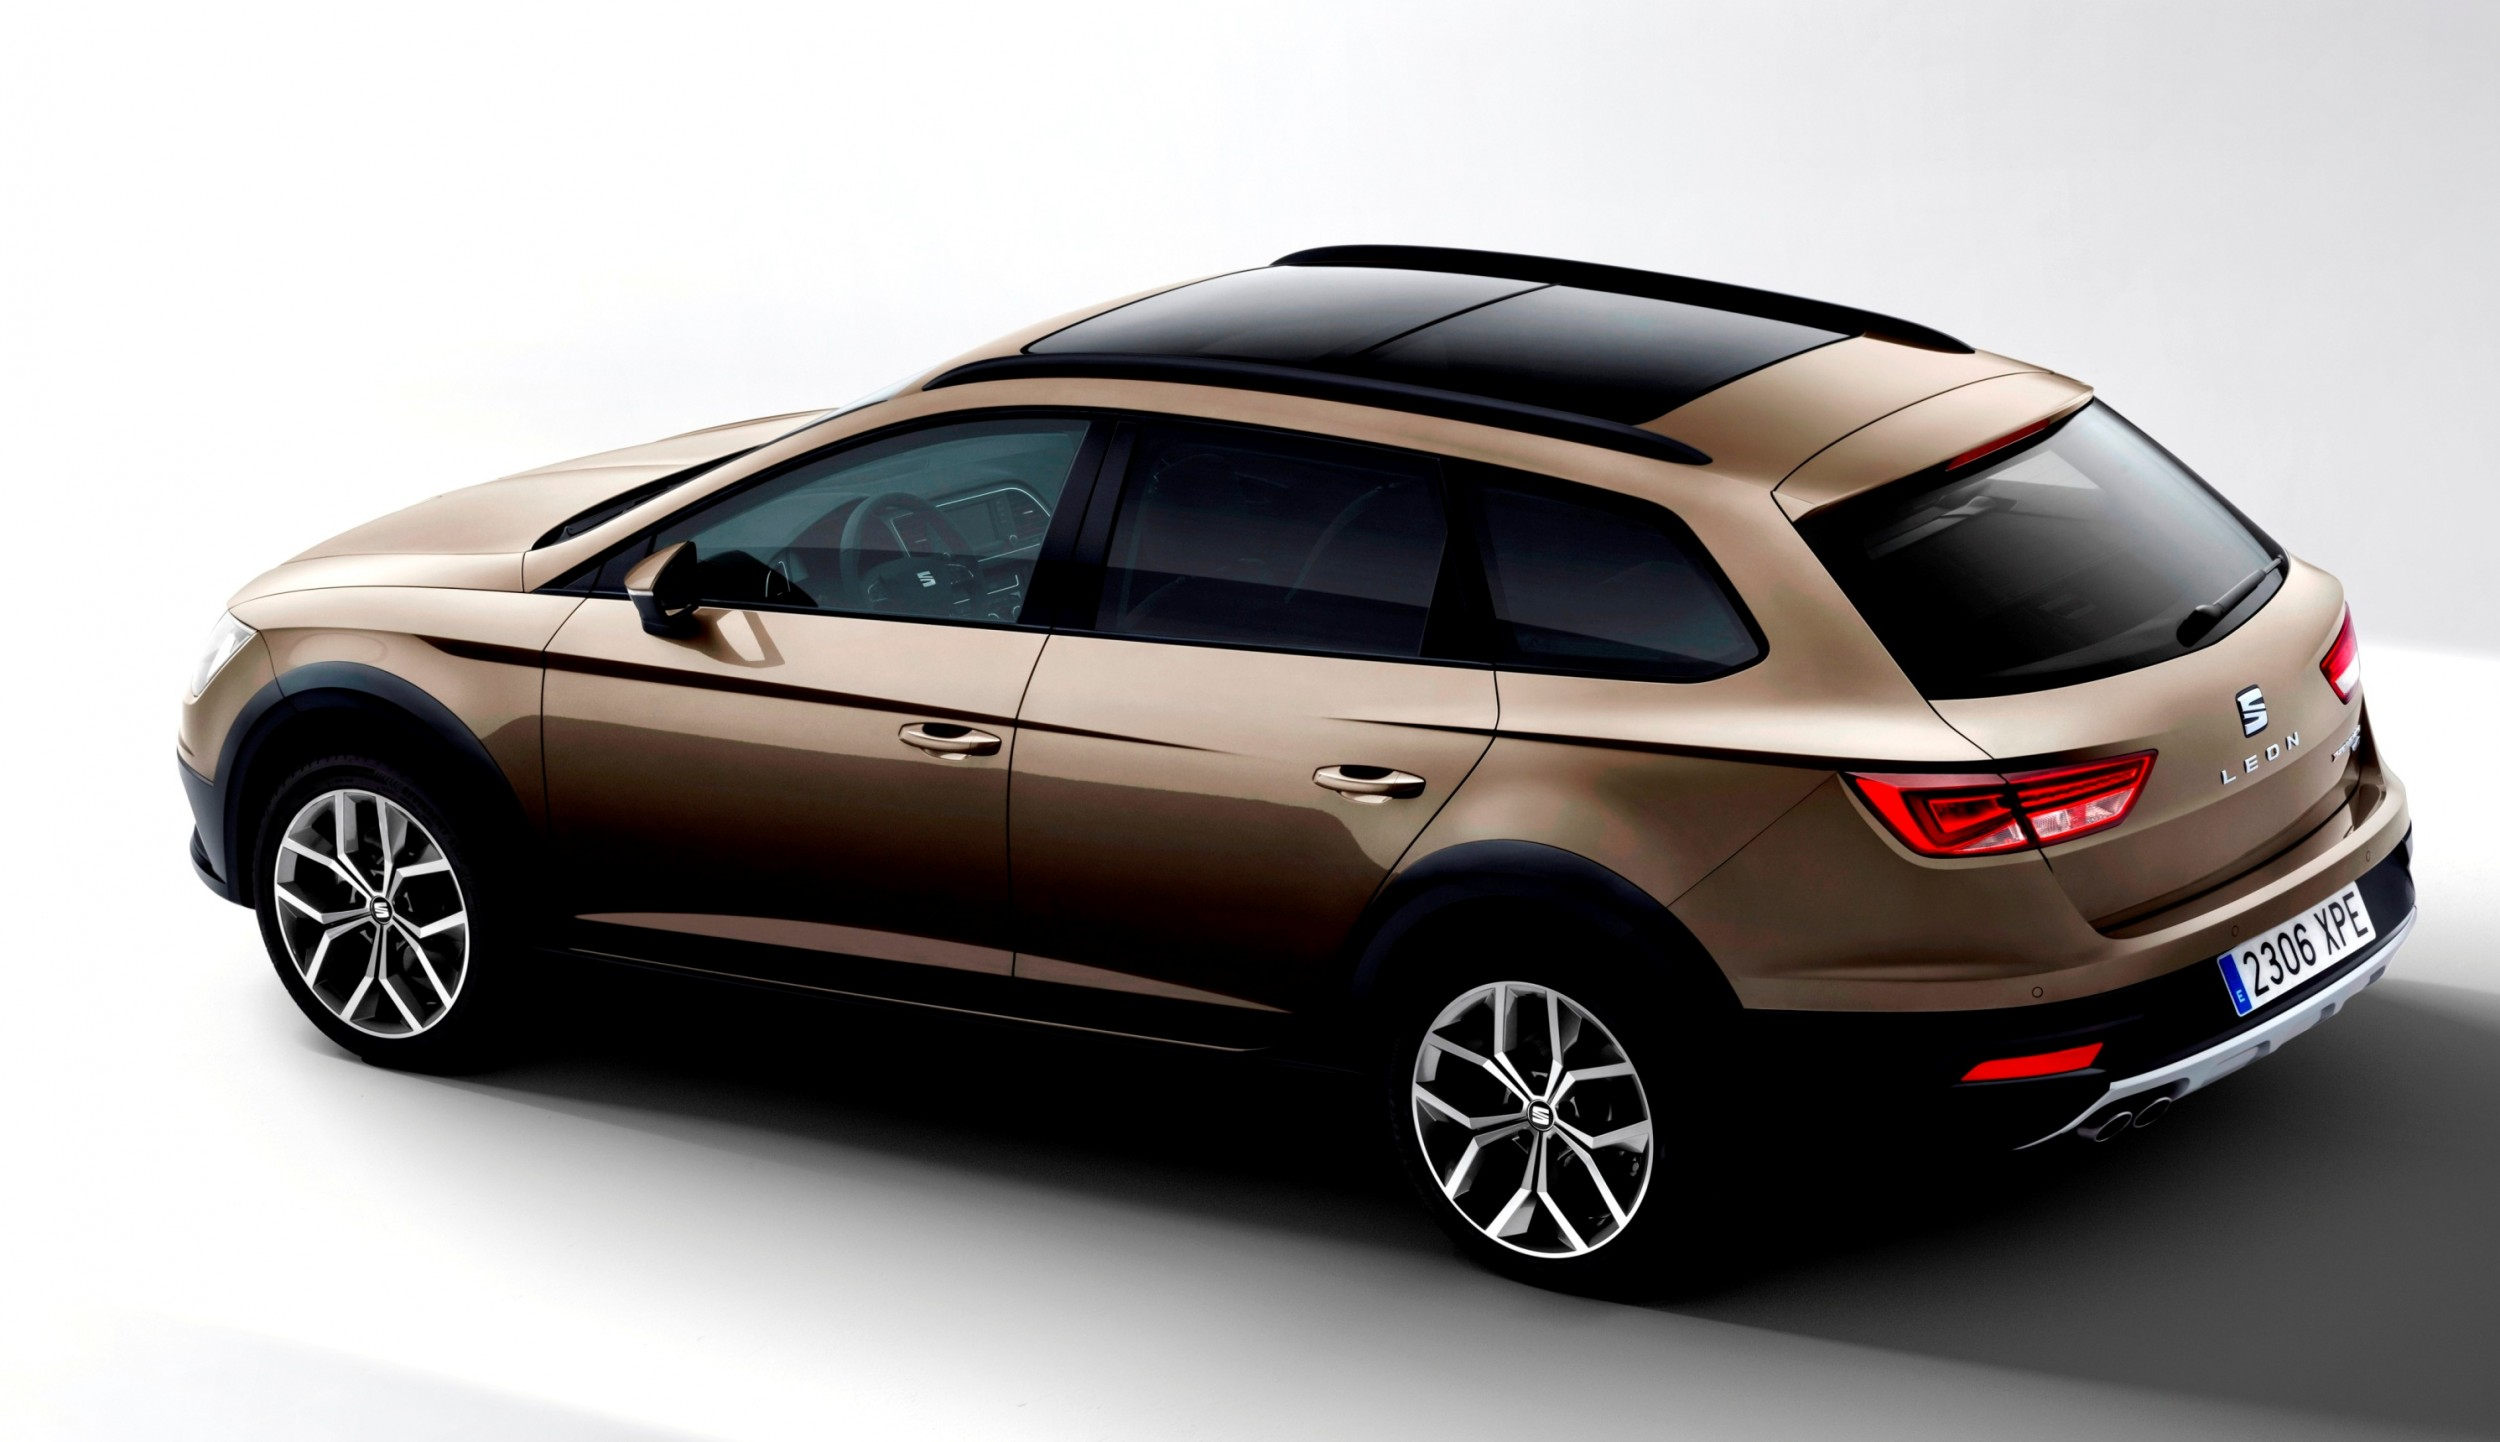 2015 seat leon x perience is gravel ready 4x4 estate coming to european dealers in november. Black Bedroom Furniture Sets. Home Design Ideas